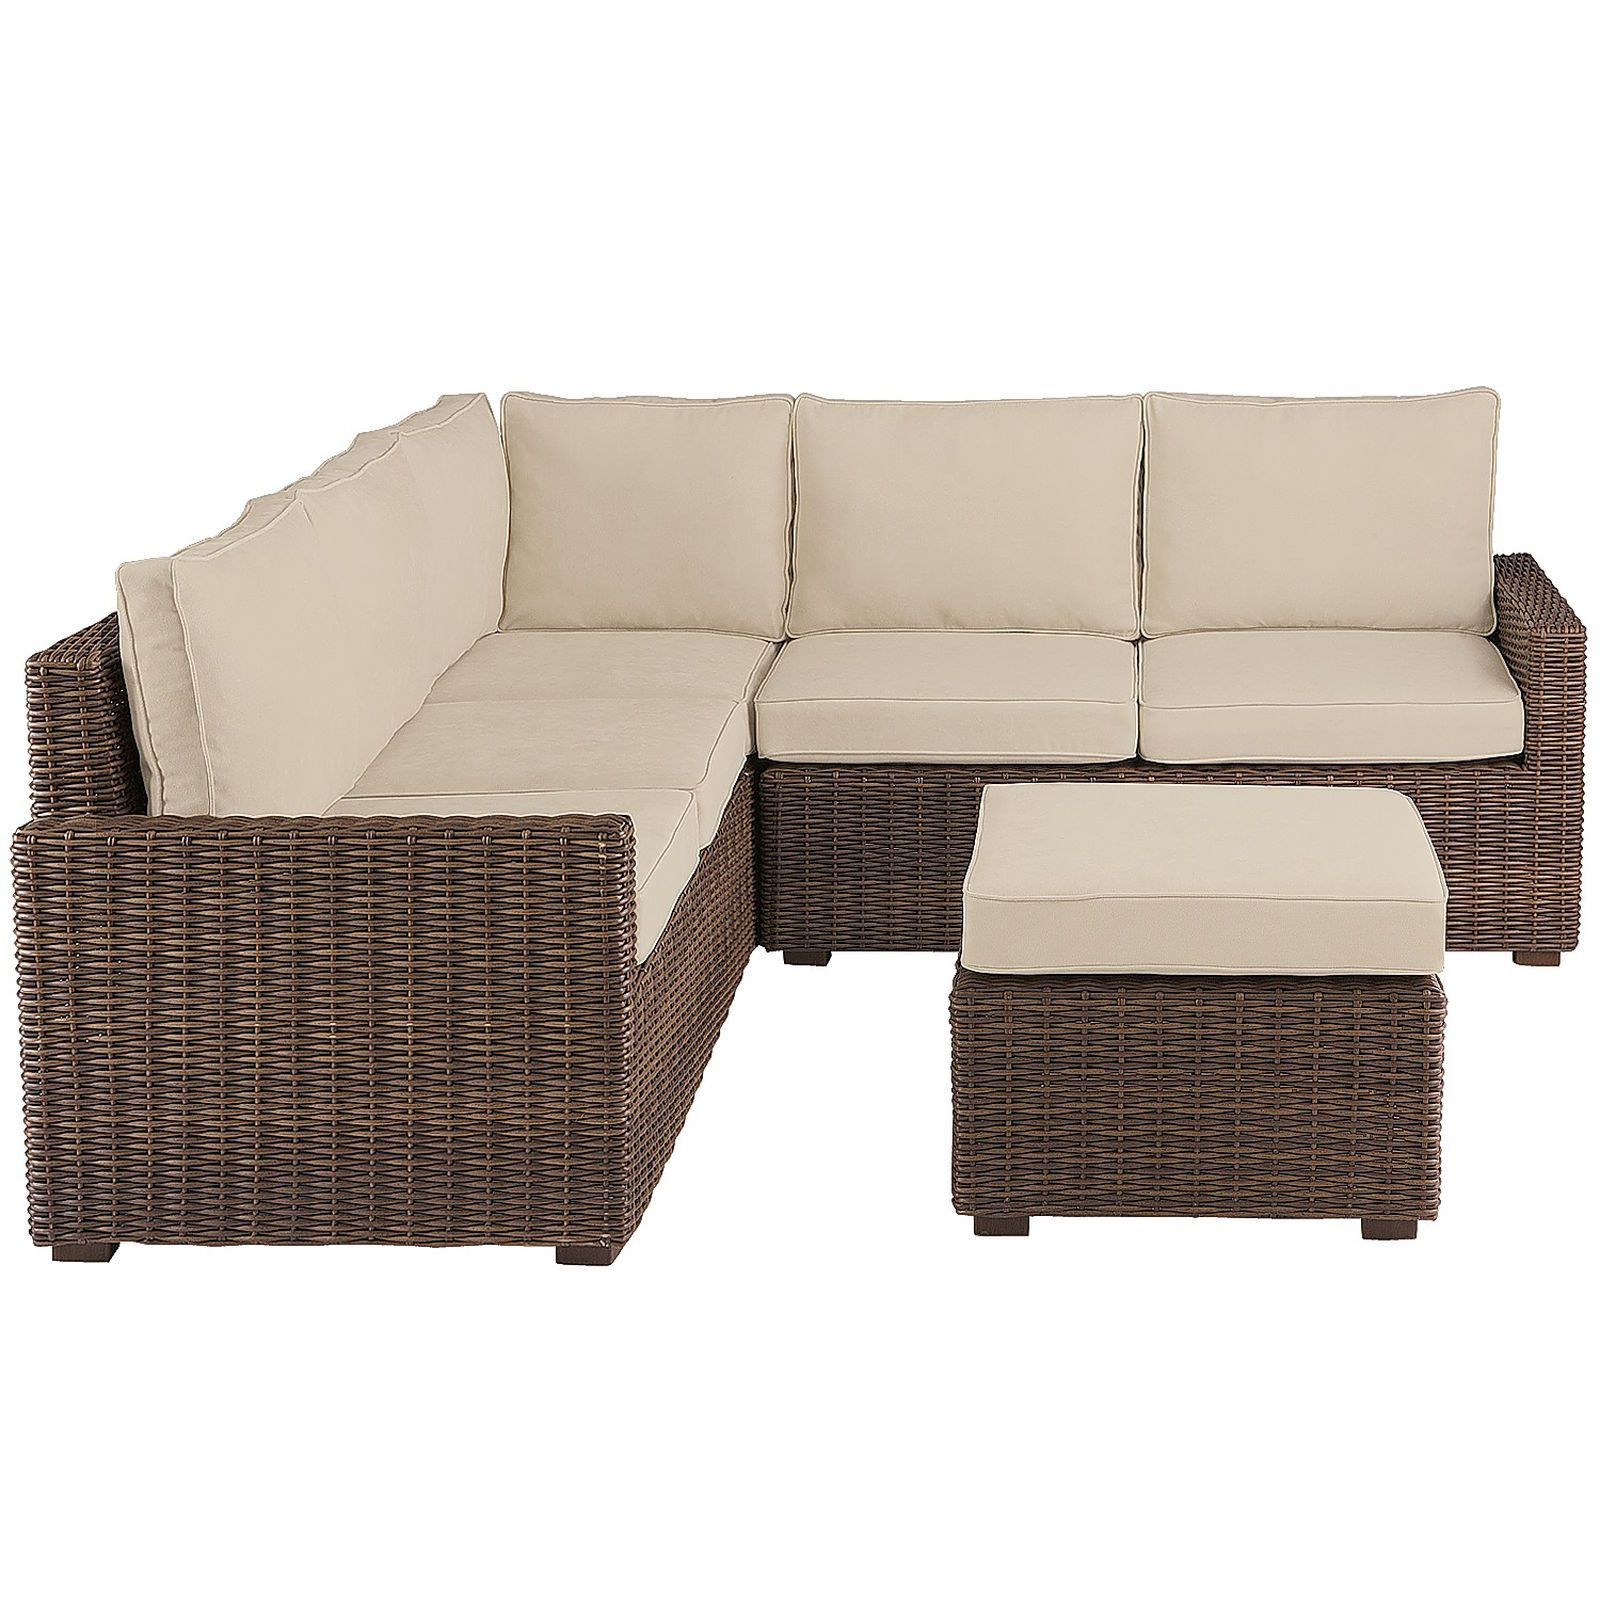 table dp outdoor garden wicker coffee chair amazon sofa furniture set distressed com patio sectional